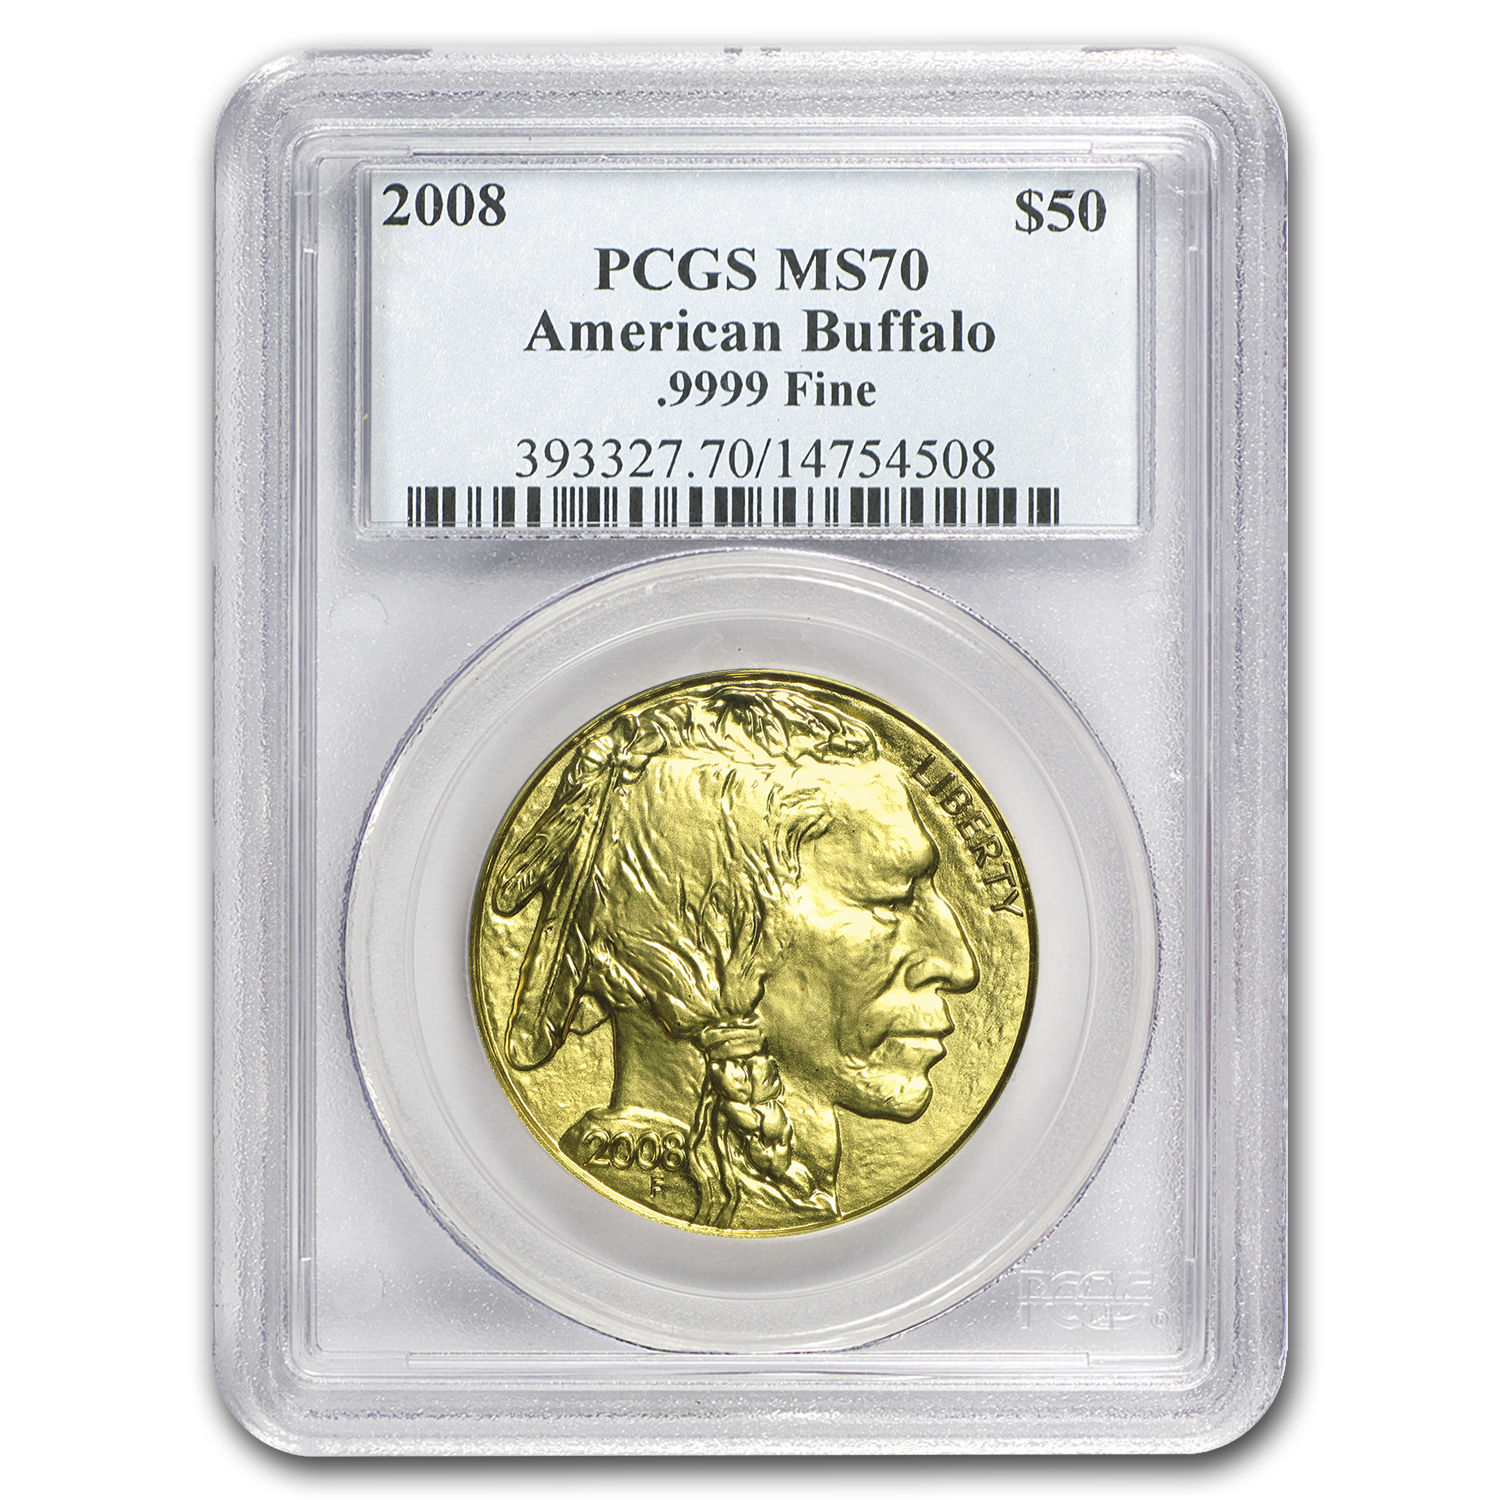 2008 1 oz Gold Buffalo MS-70 PCGS